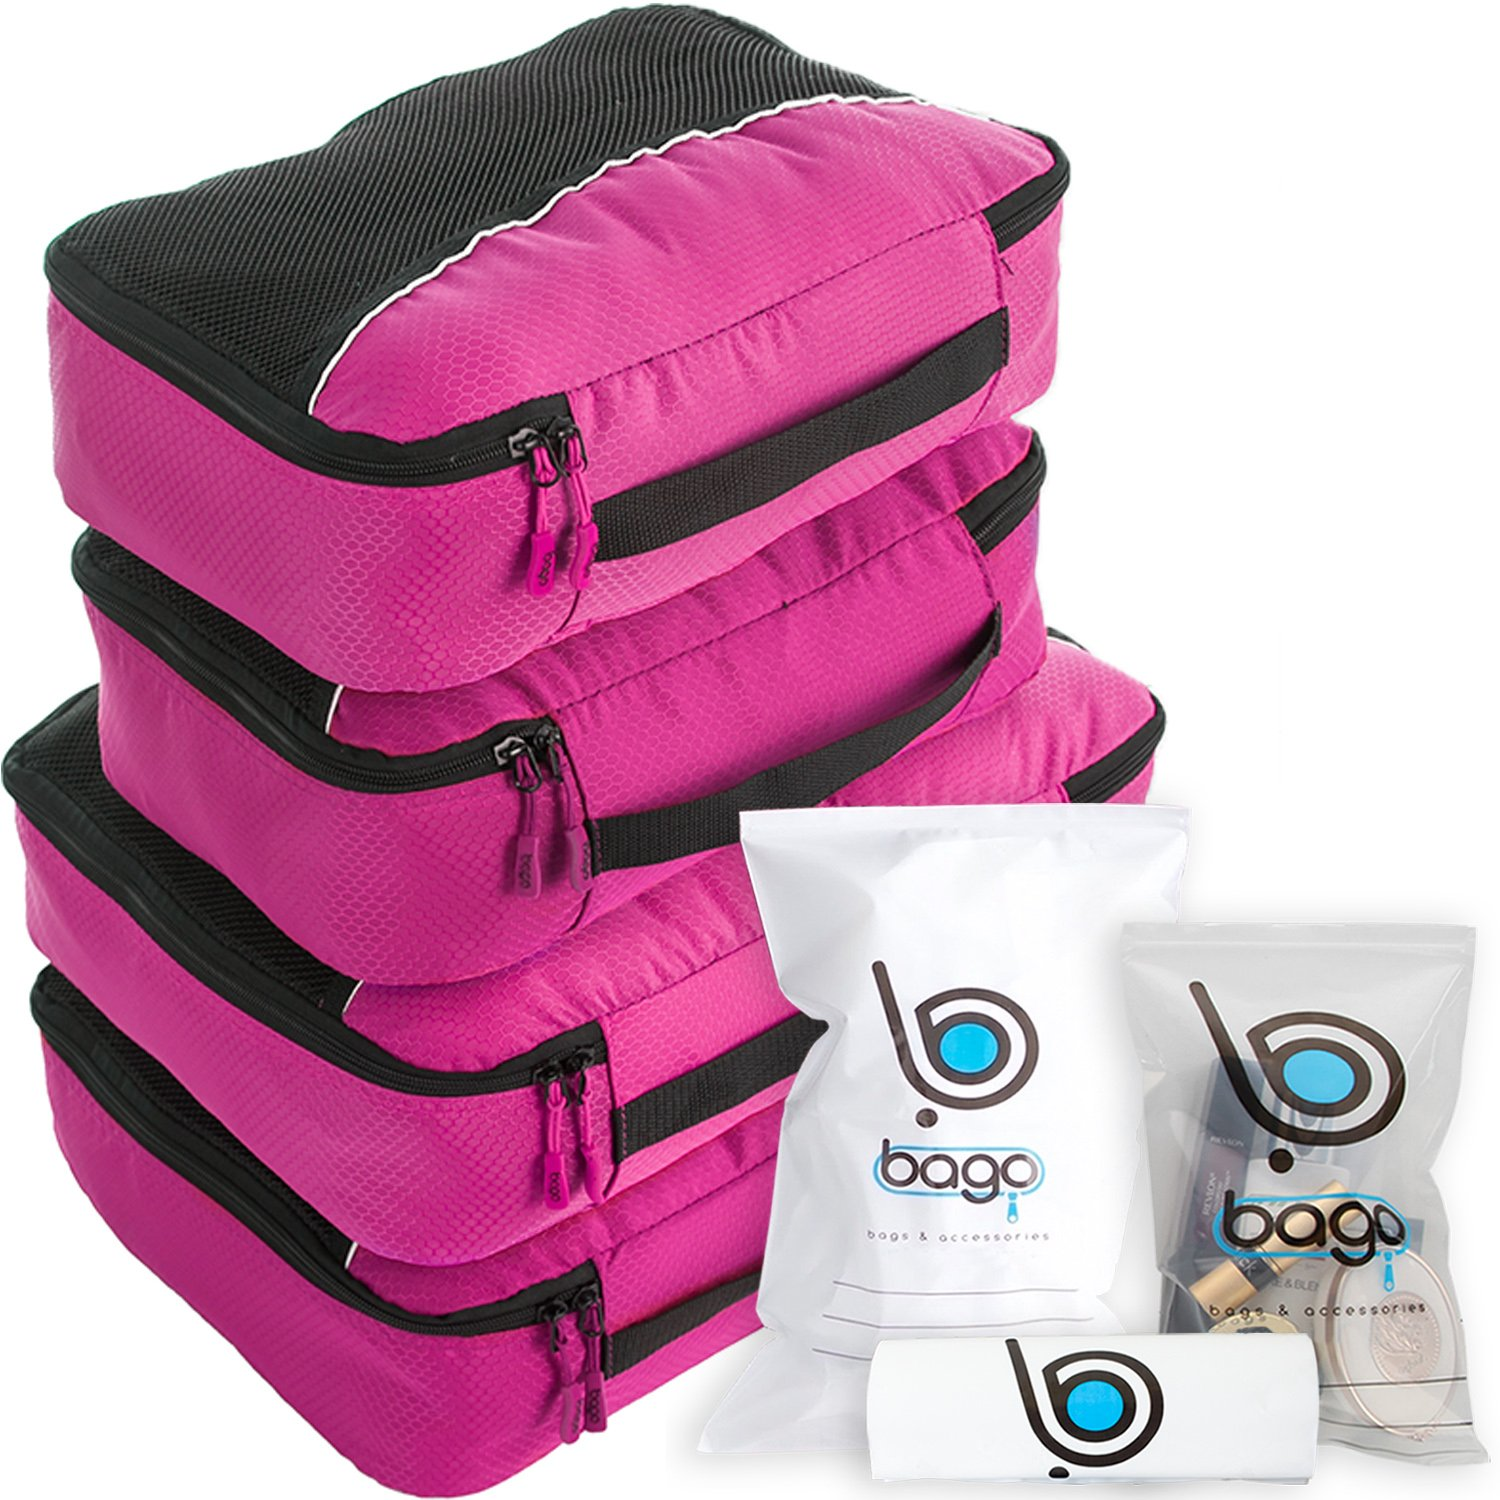 Packing Cubes 4pcs Value Set for Travel - Plus 6pcs Organizer Zip Bags ((L) DBlueOrance(M) PurpleOrange)